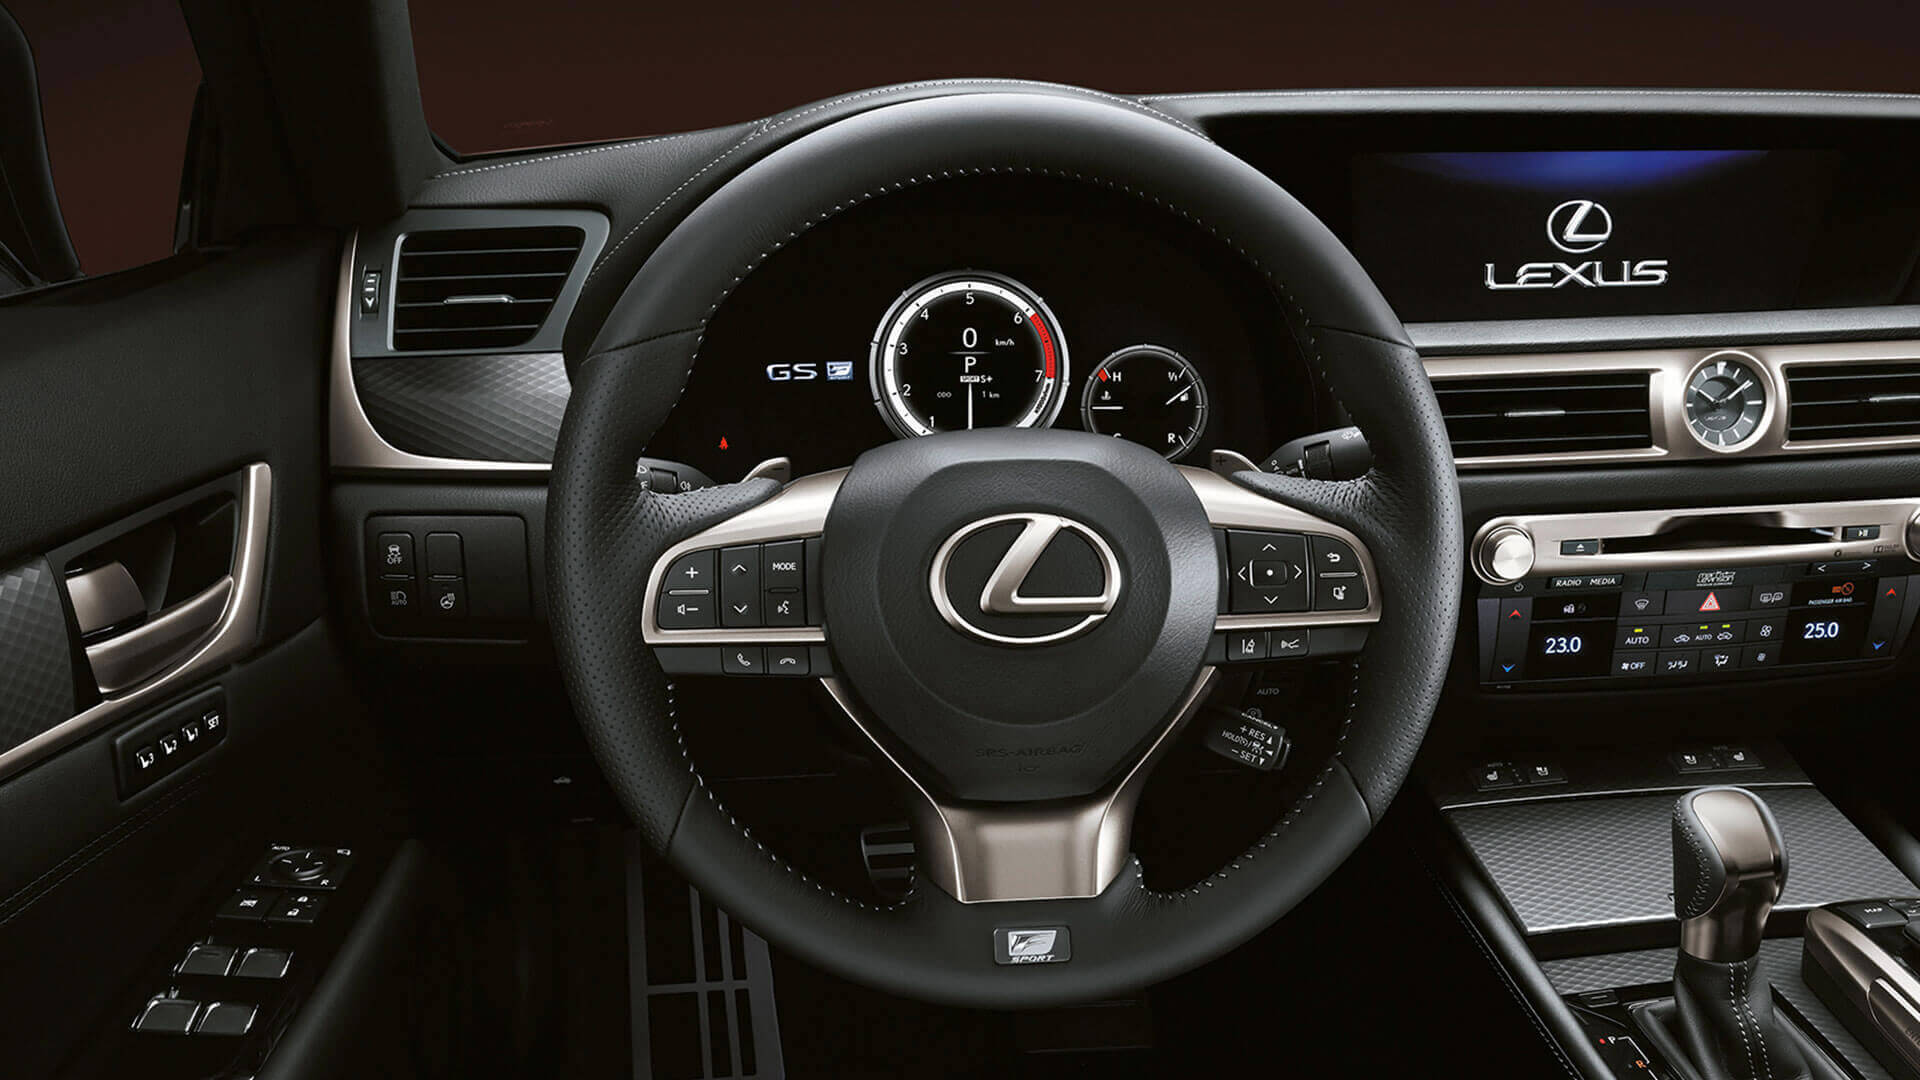 2015 lexus gs 200t features steering wheel